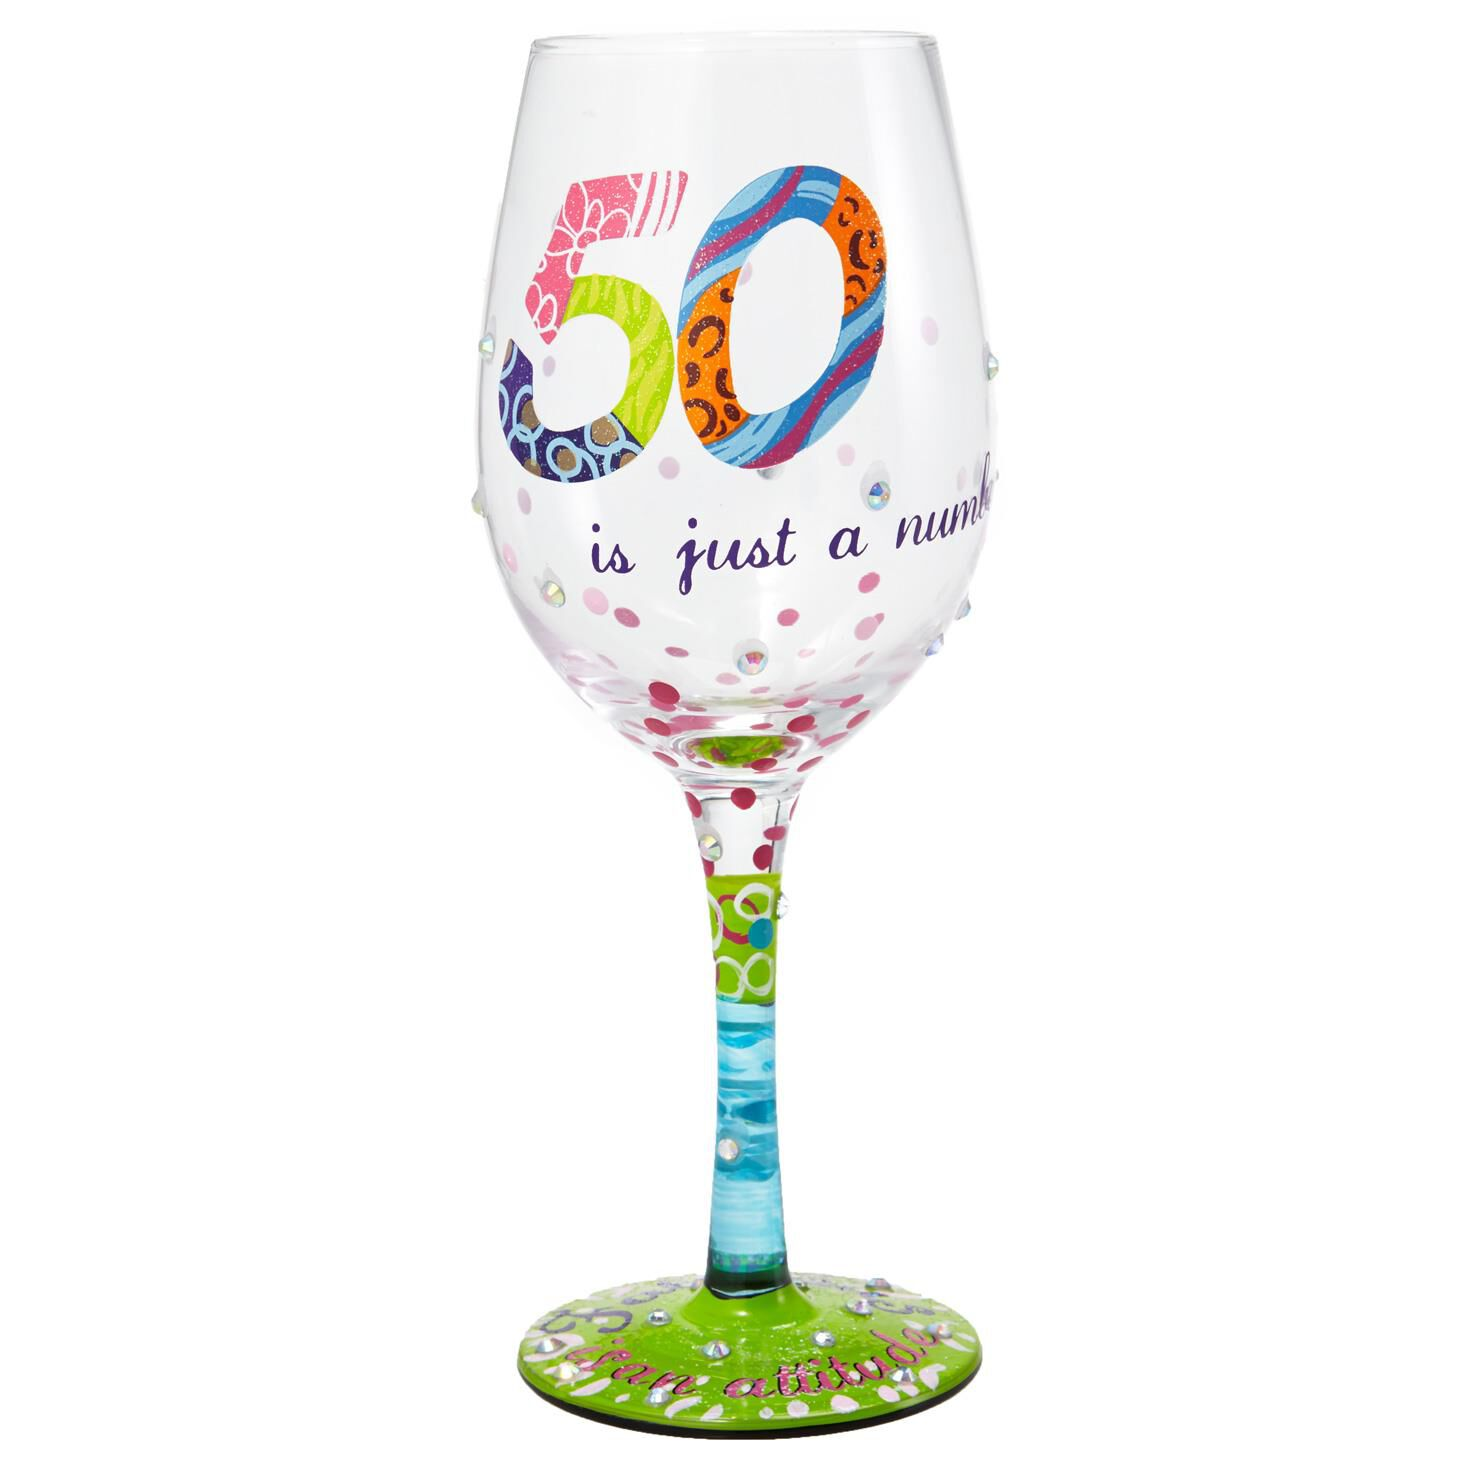 1000  images about Wine glasses on Pinterest | Sippy cups, Crate ...